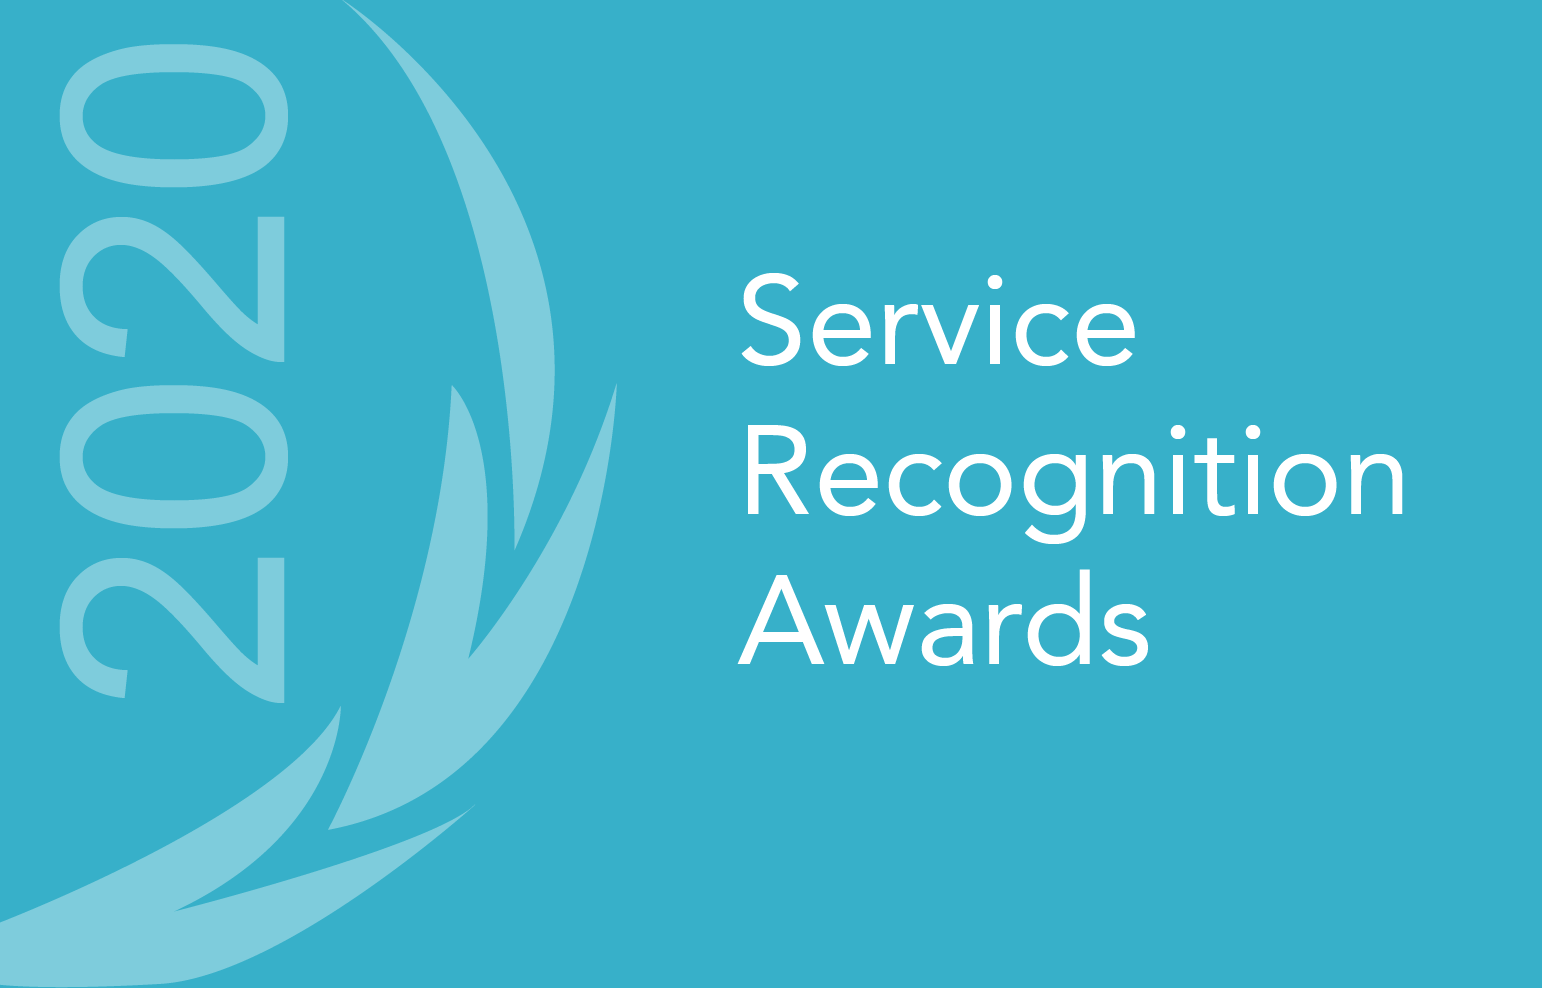 Service Recognition Awards 2020